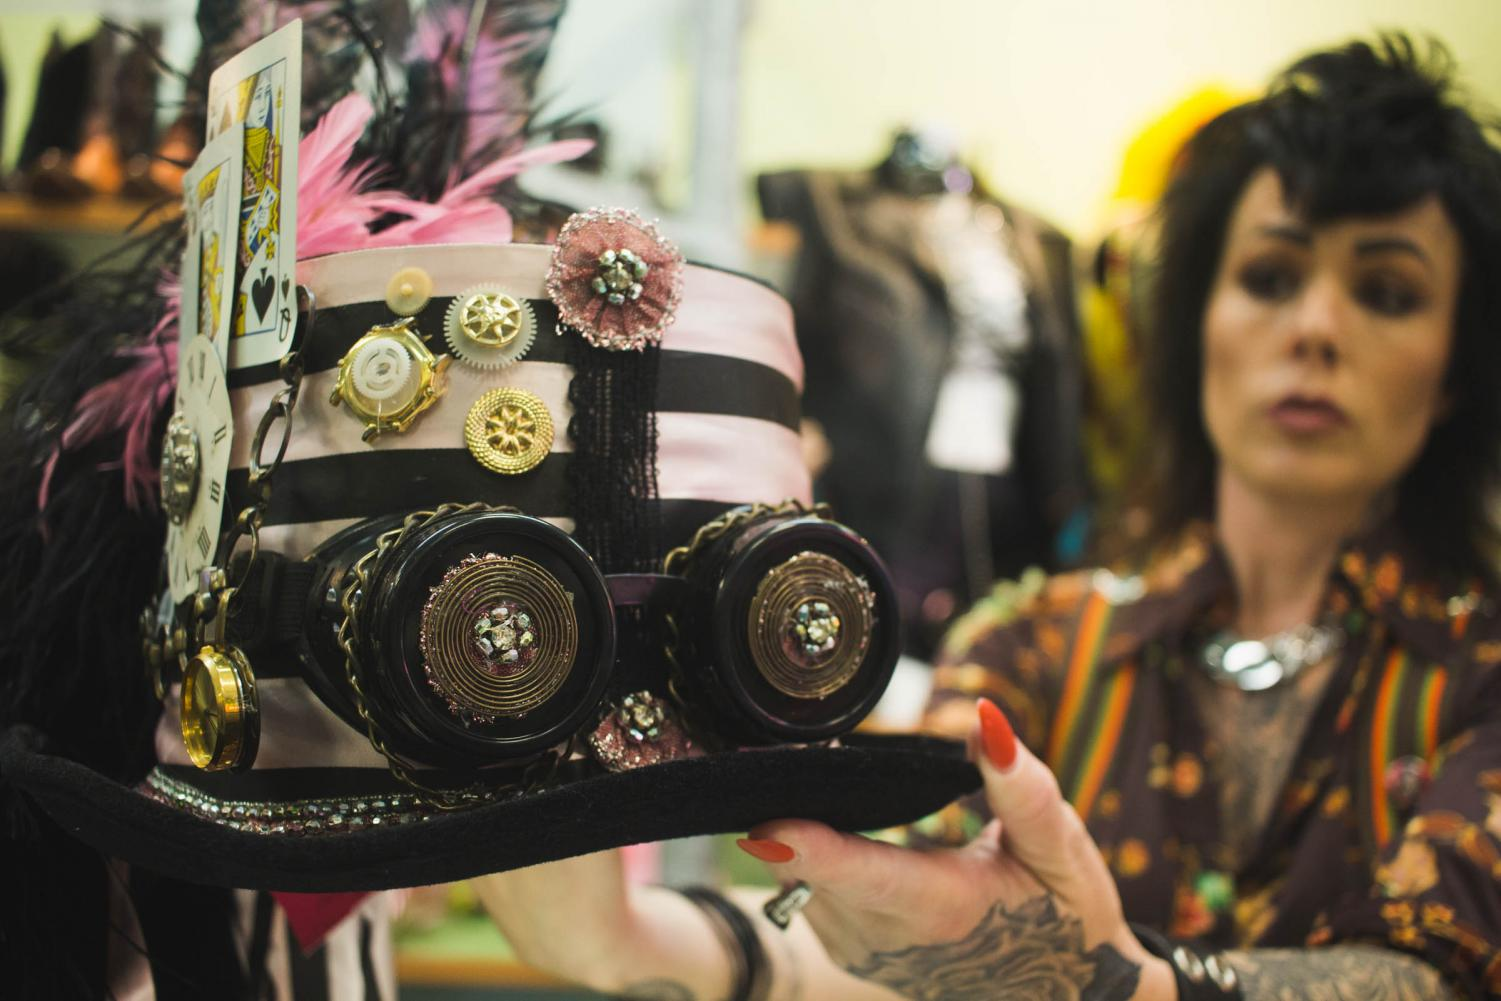 Flashbacks has a whole section of the store dedicated to Steampunk for Halloween this year. Photo by Nadia Mishkin,  City Times.